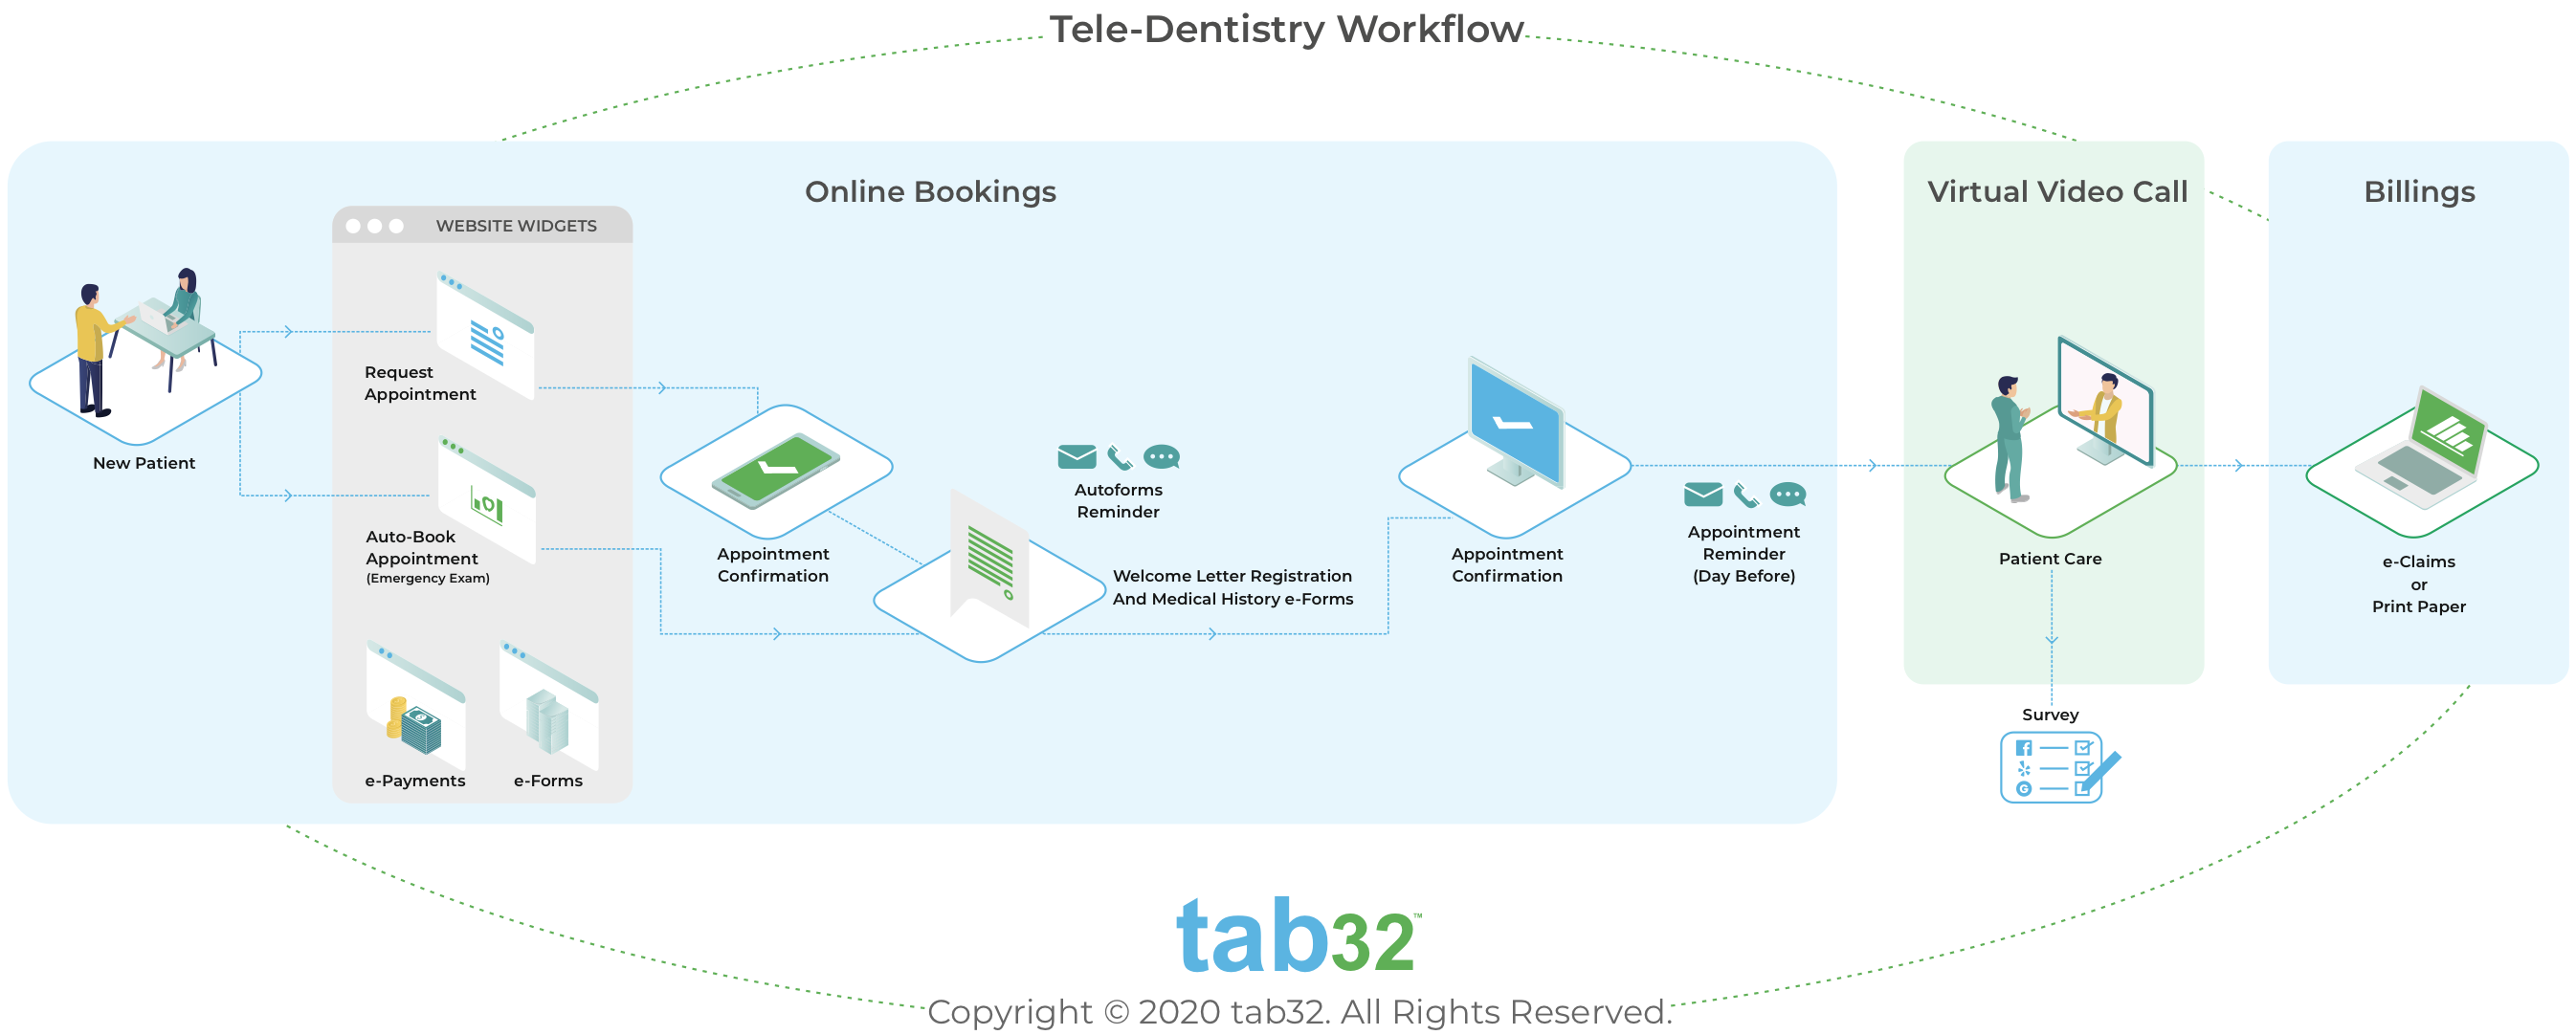 tab32 Announces The Release Of Tele-Dentistry Platform